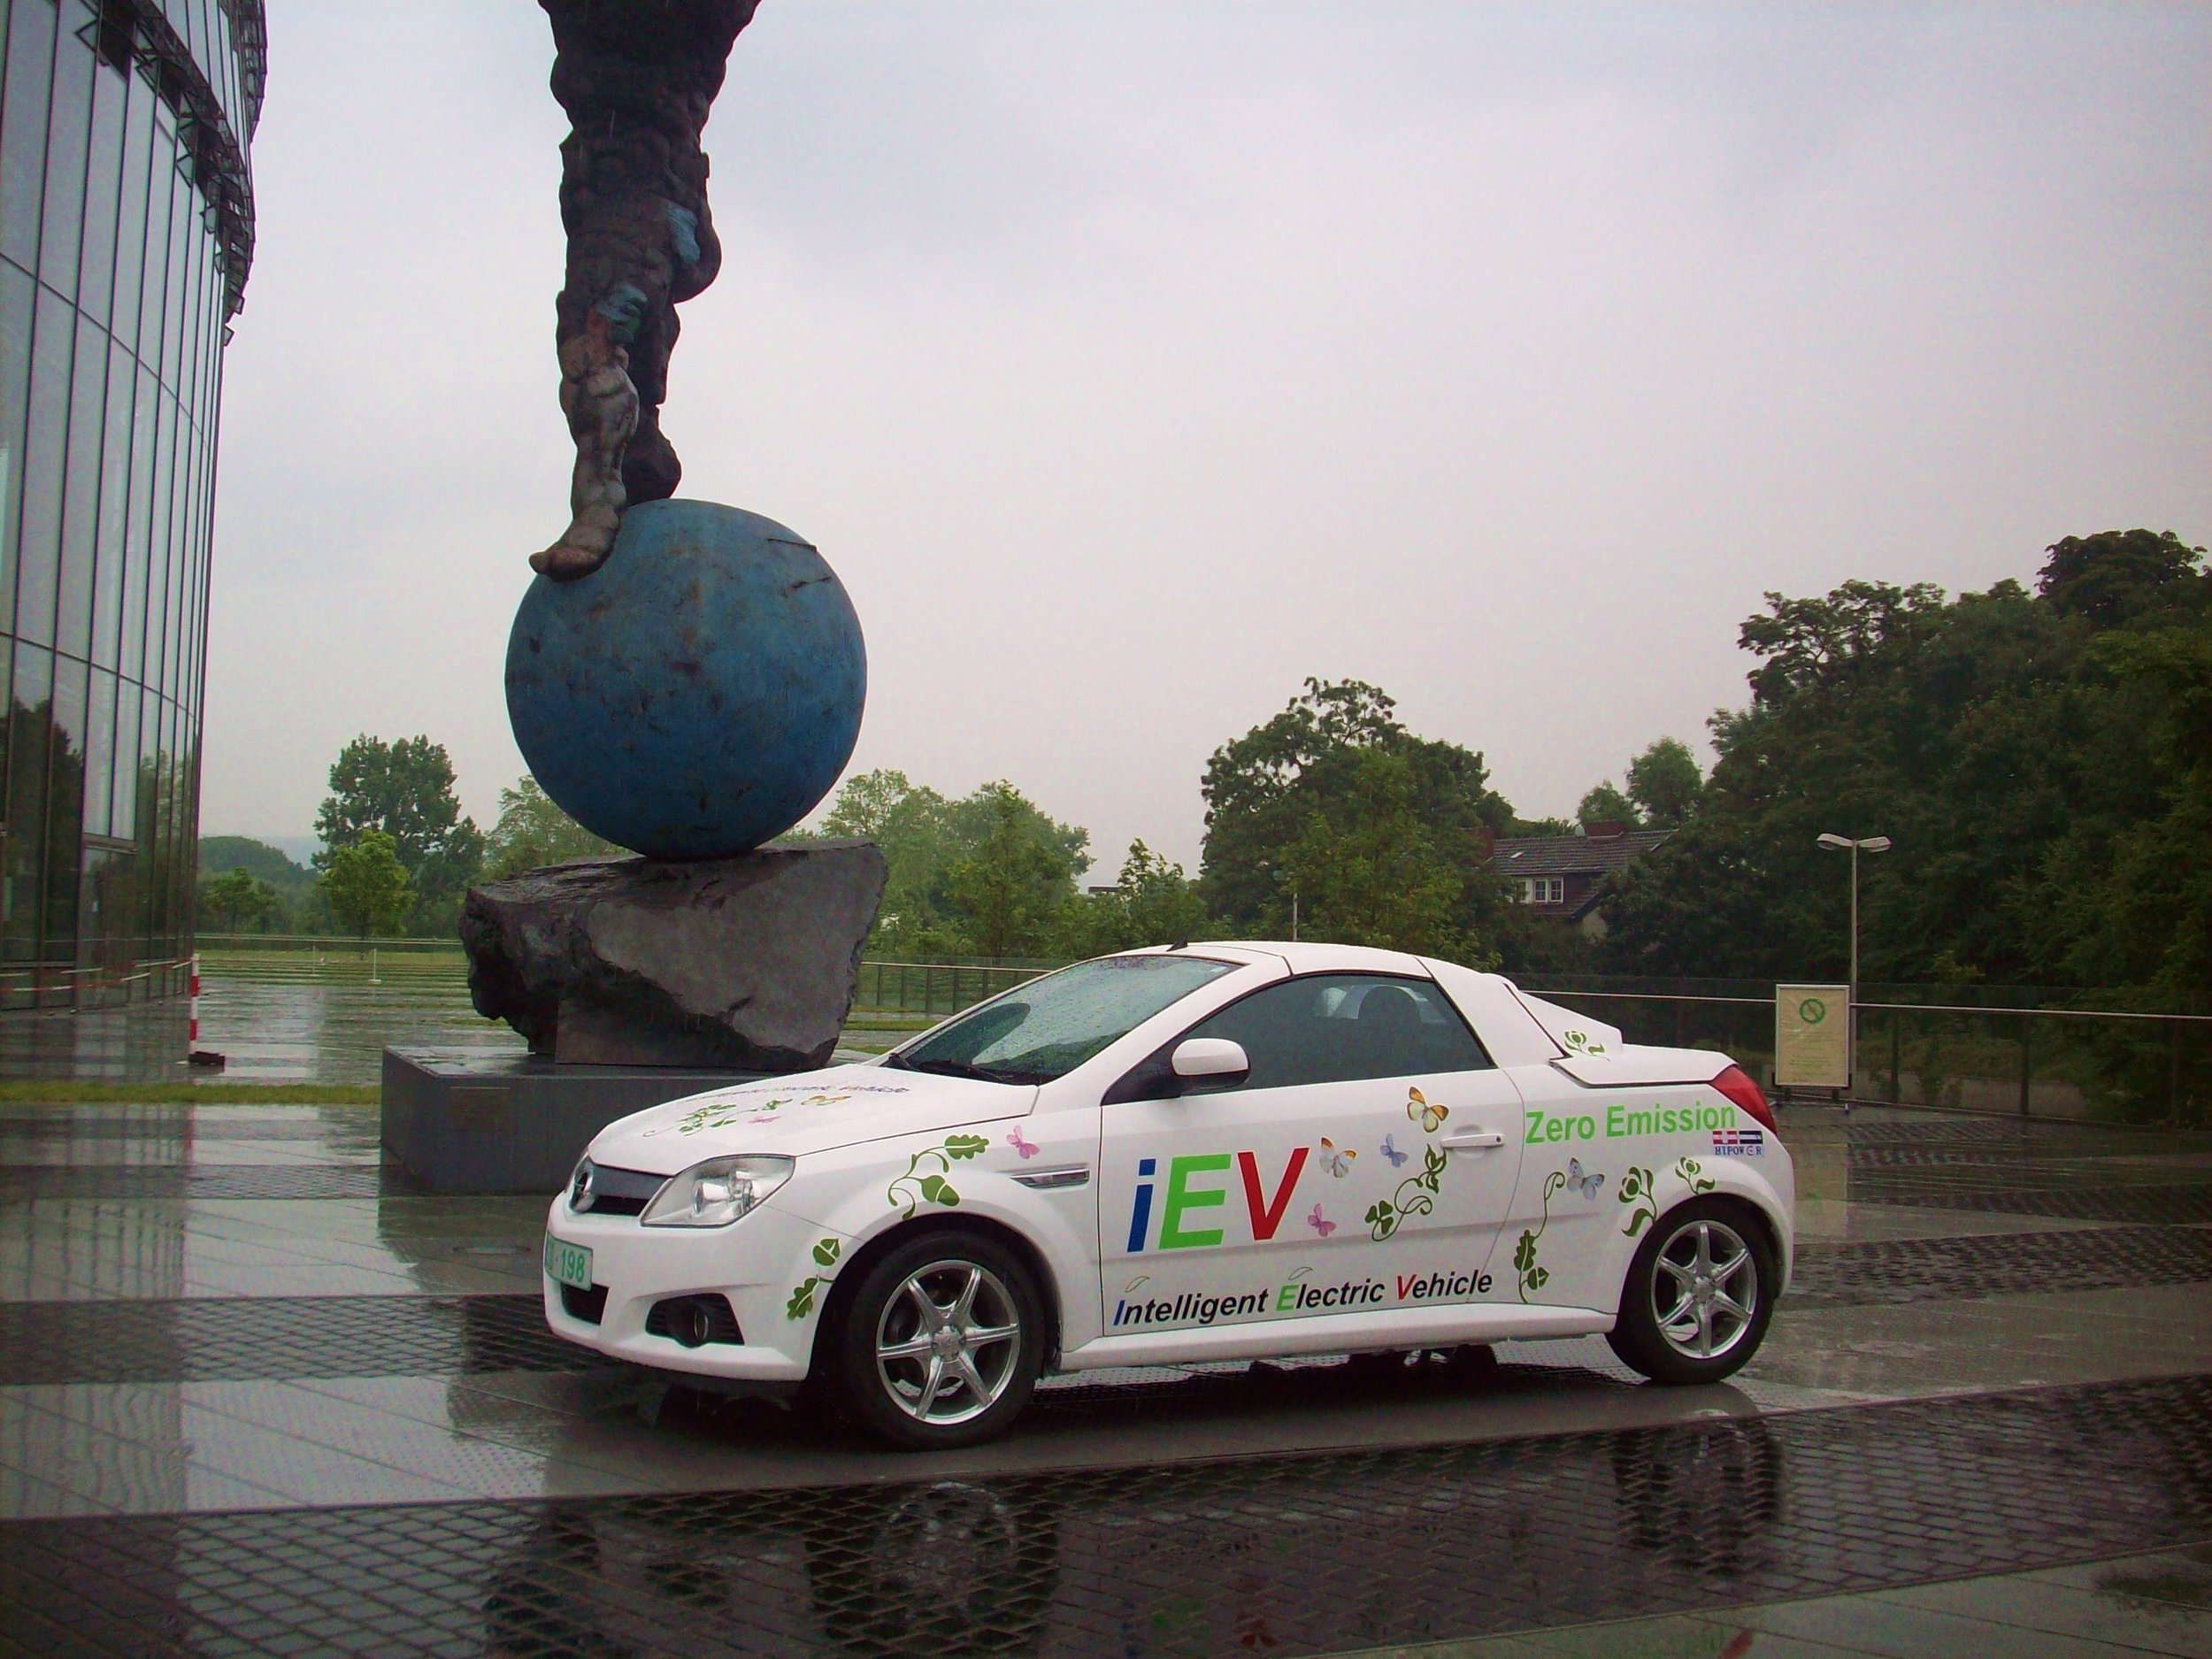 iEV OPEL TIGRA - AT BONN GERMANYDrive with IEV OPEL TIGRA from Brussels to Bonn with one single charge to join the first Electric Vehicle Conference in Bonn Germany in June 2009.